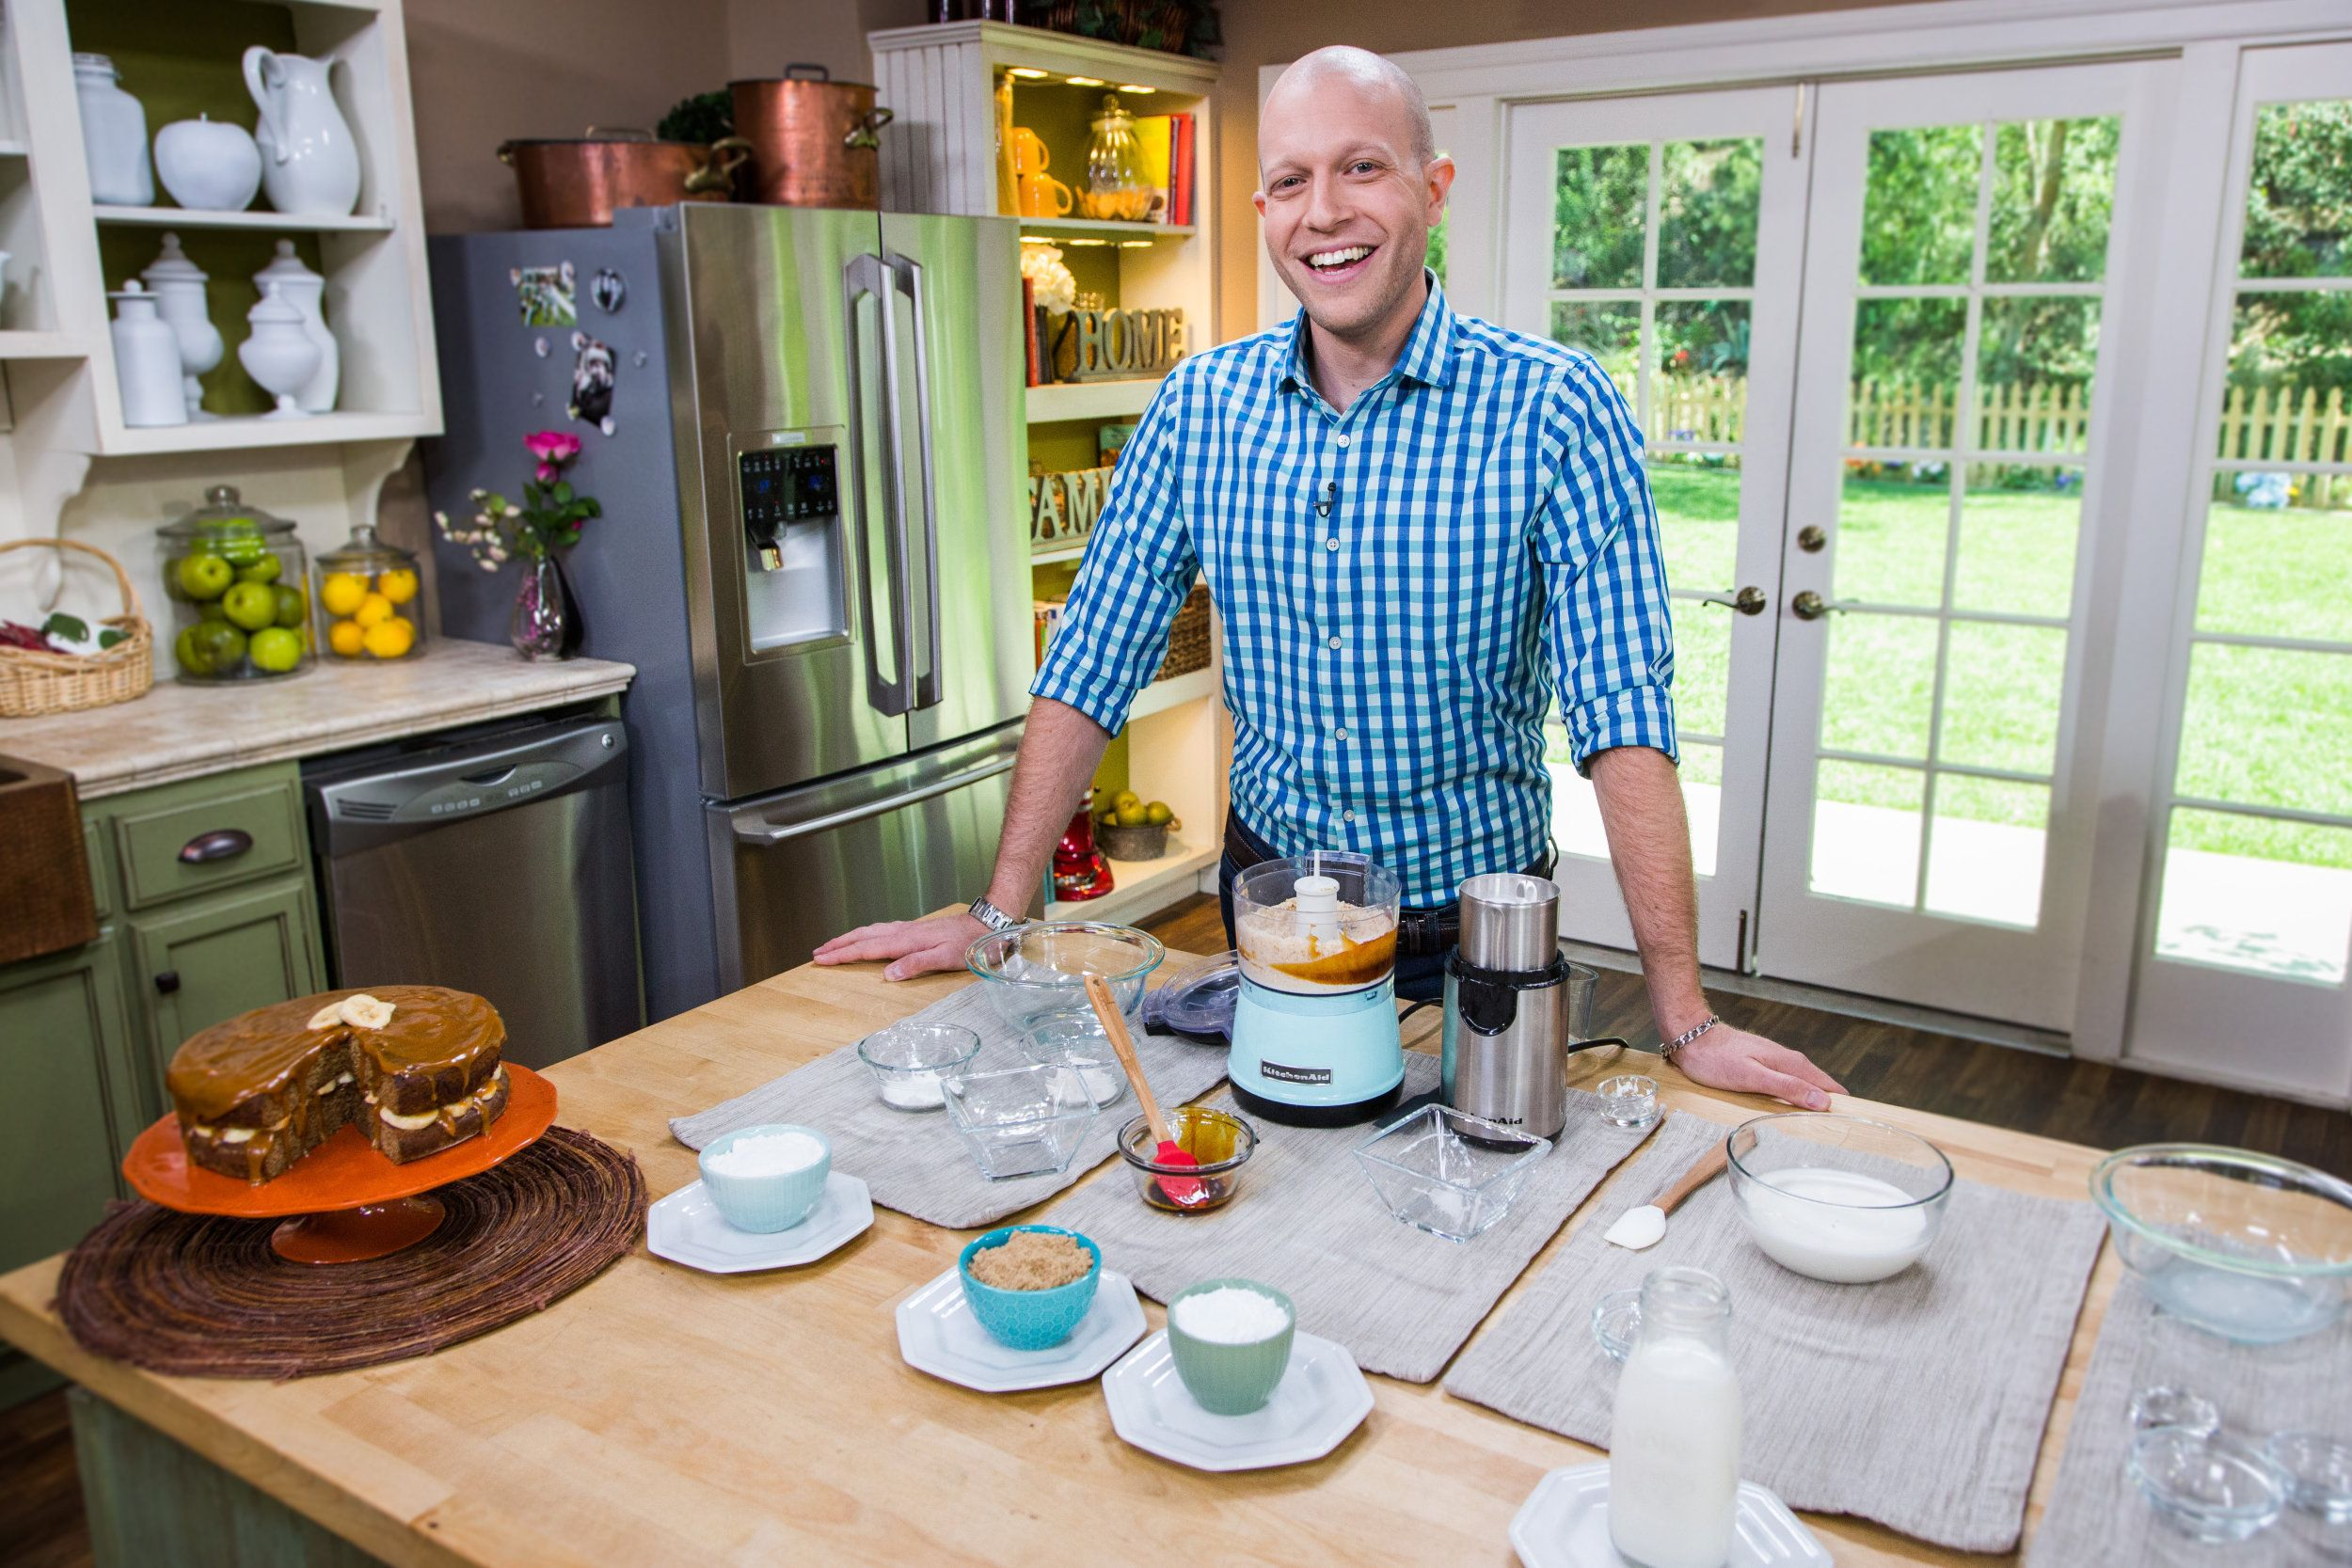 Dan shows you some easy swaps when you may find you don't have a certain ingredient on hand!